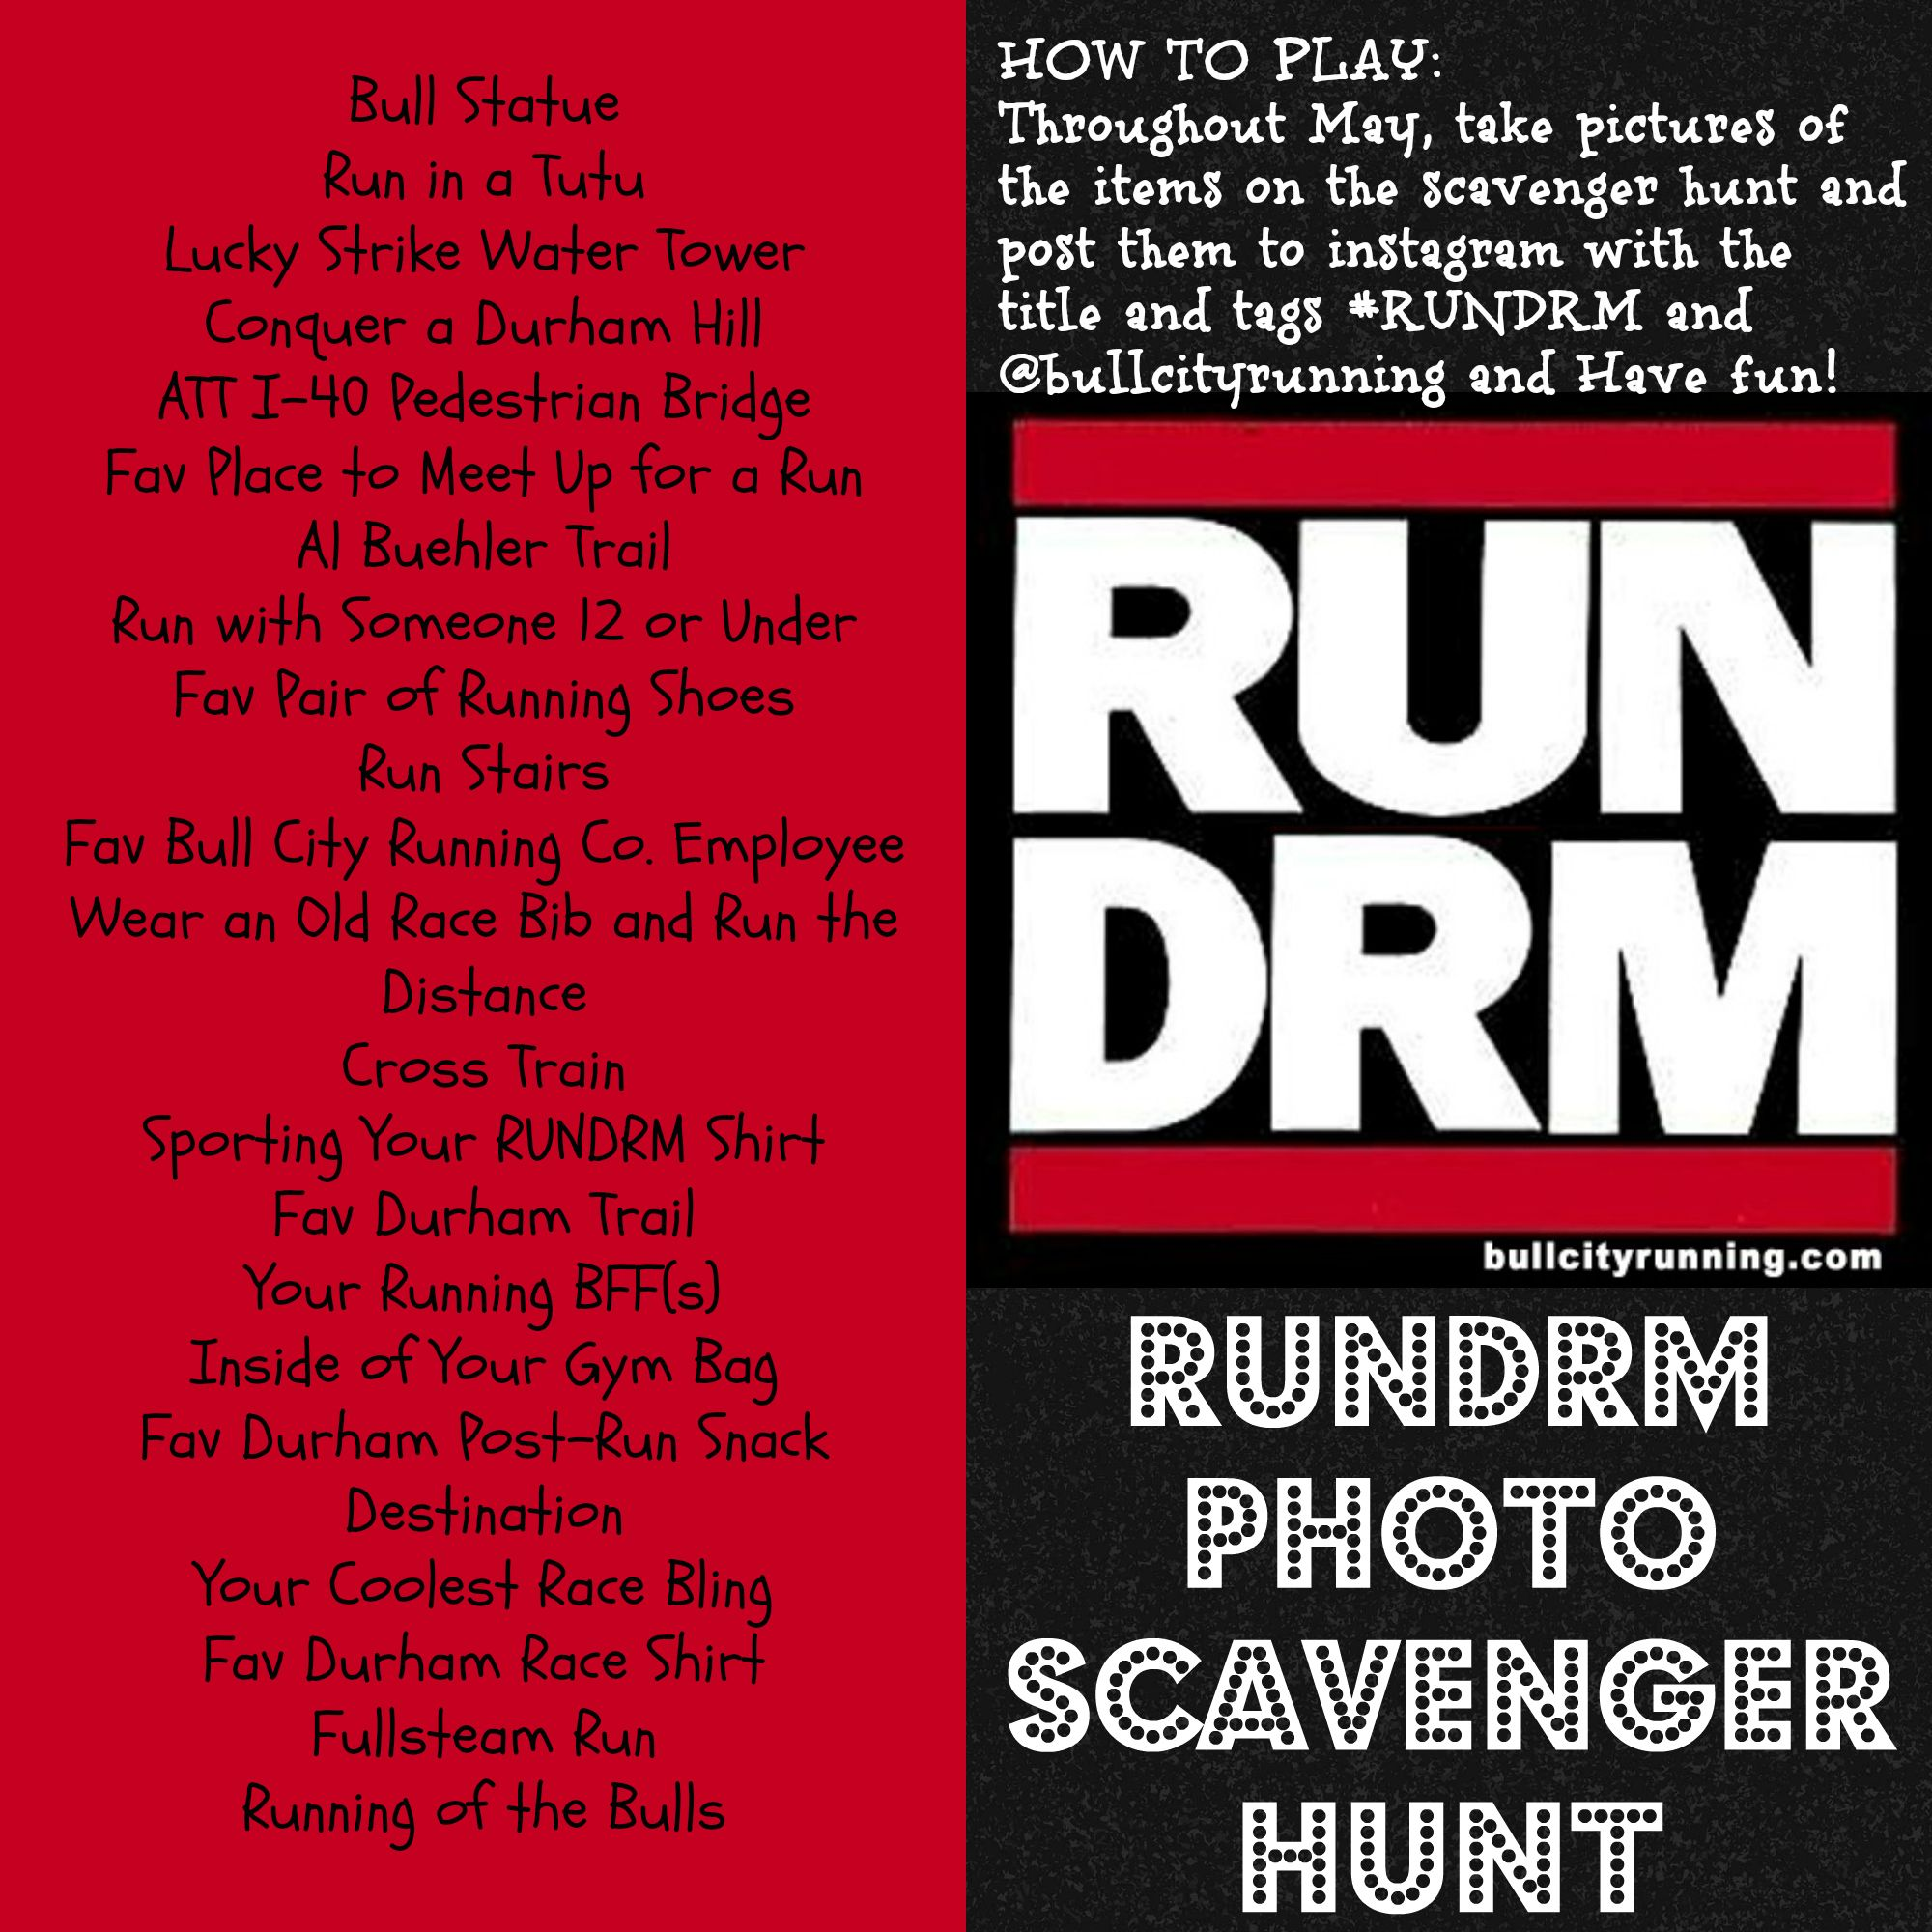 Rundrm Photo Scavenger Hunt